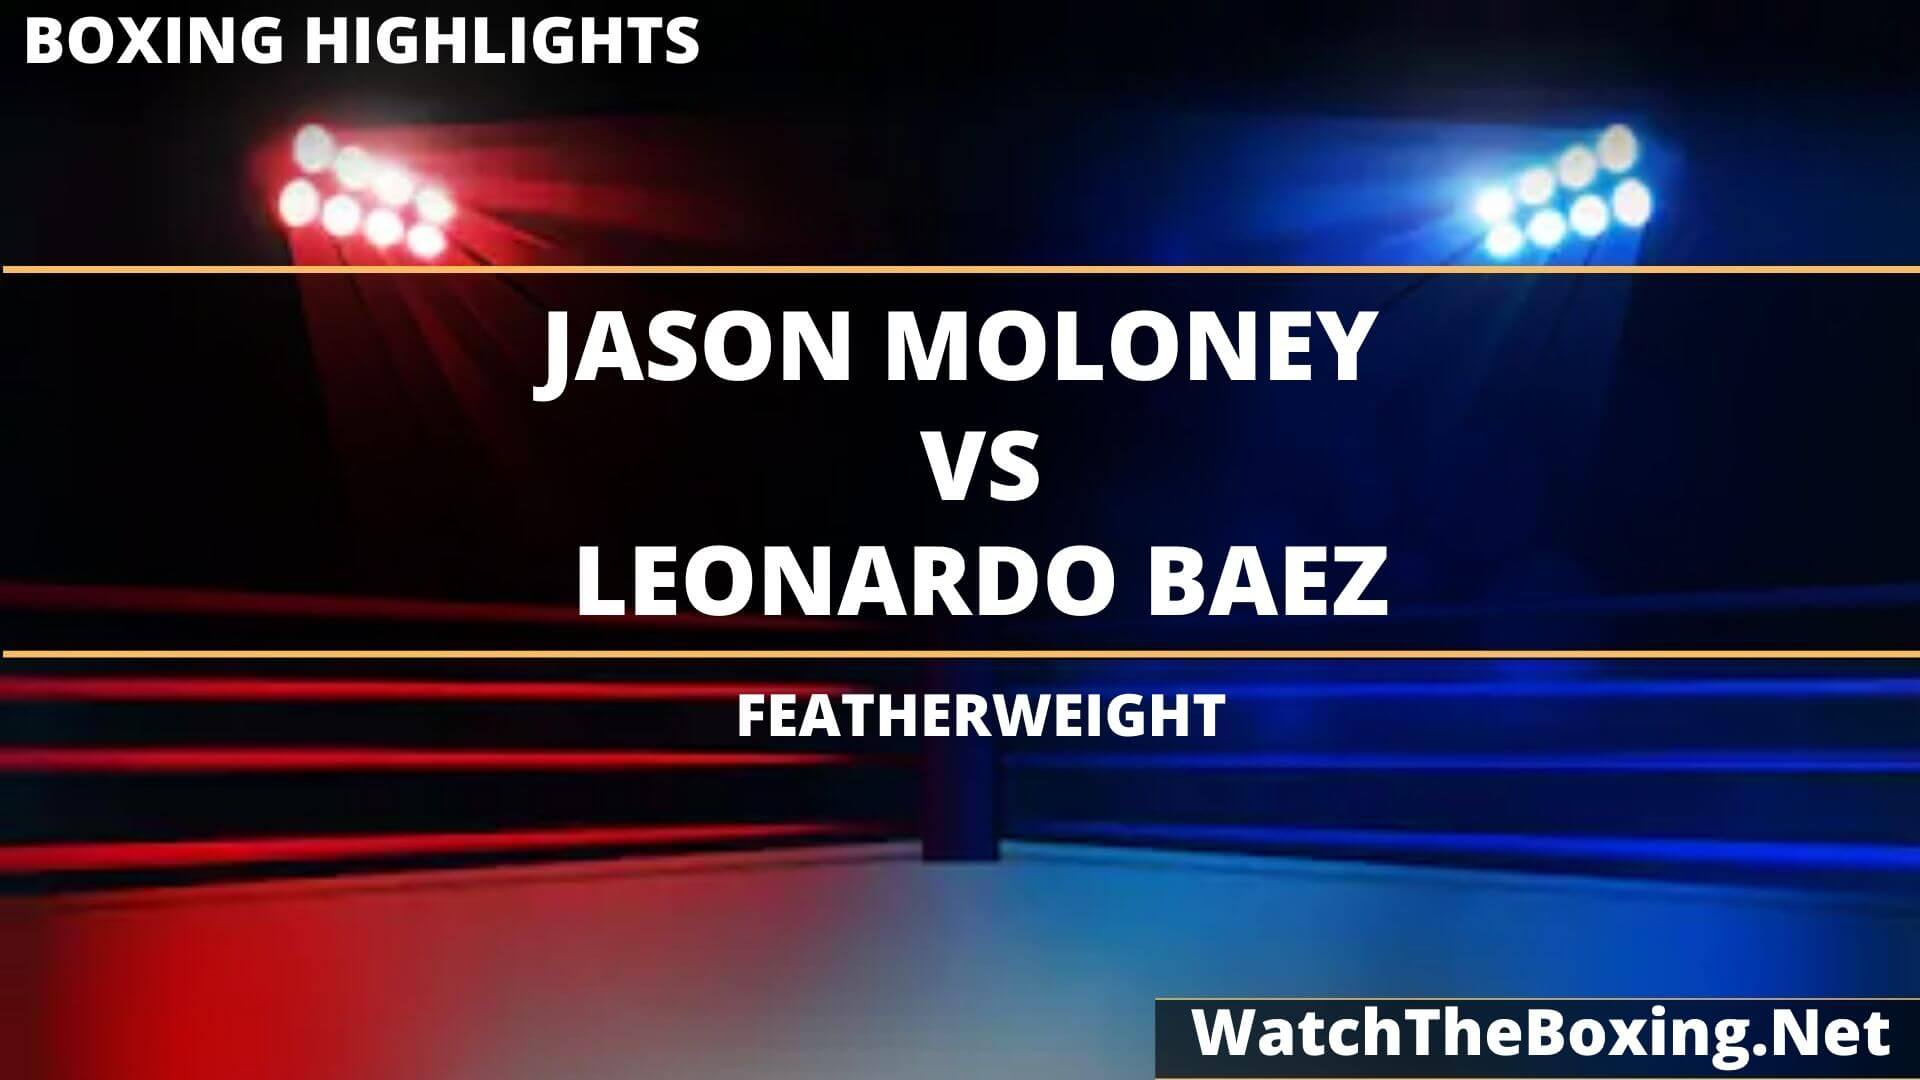 Jason Moloney Vs Leonardo Baez Highlights 2020 Featherweight